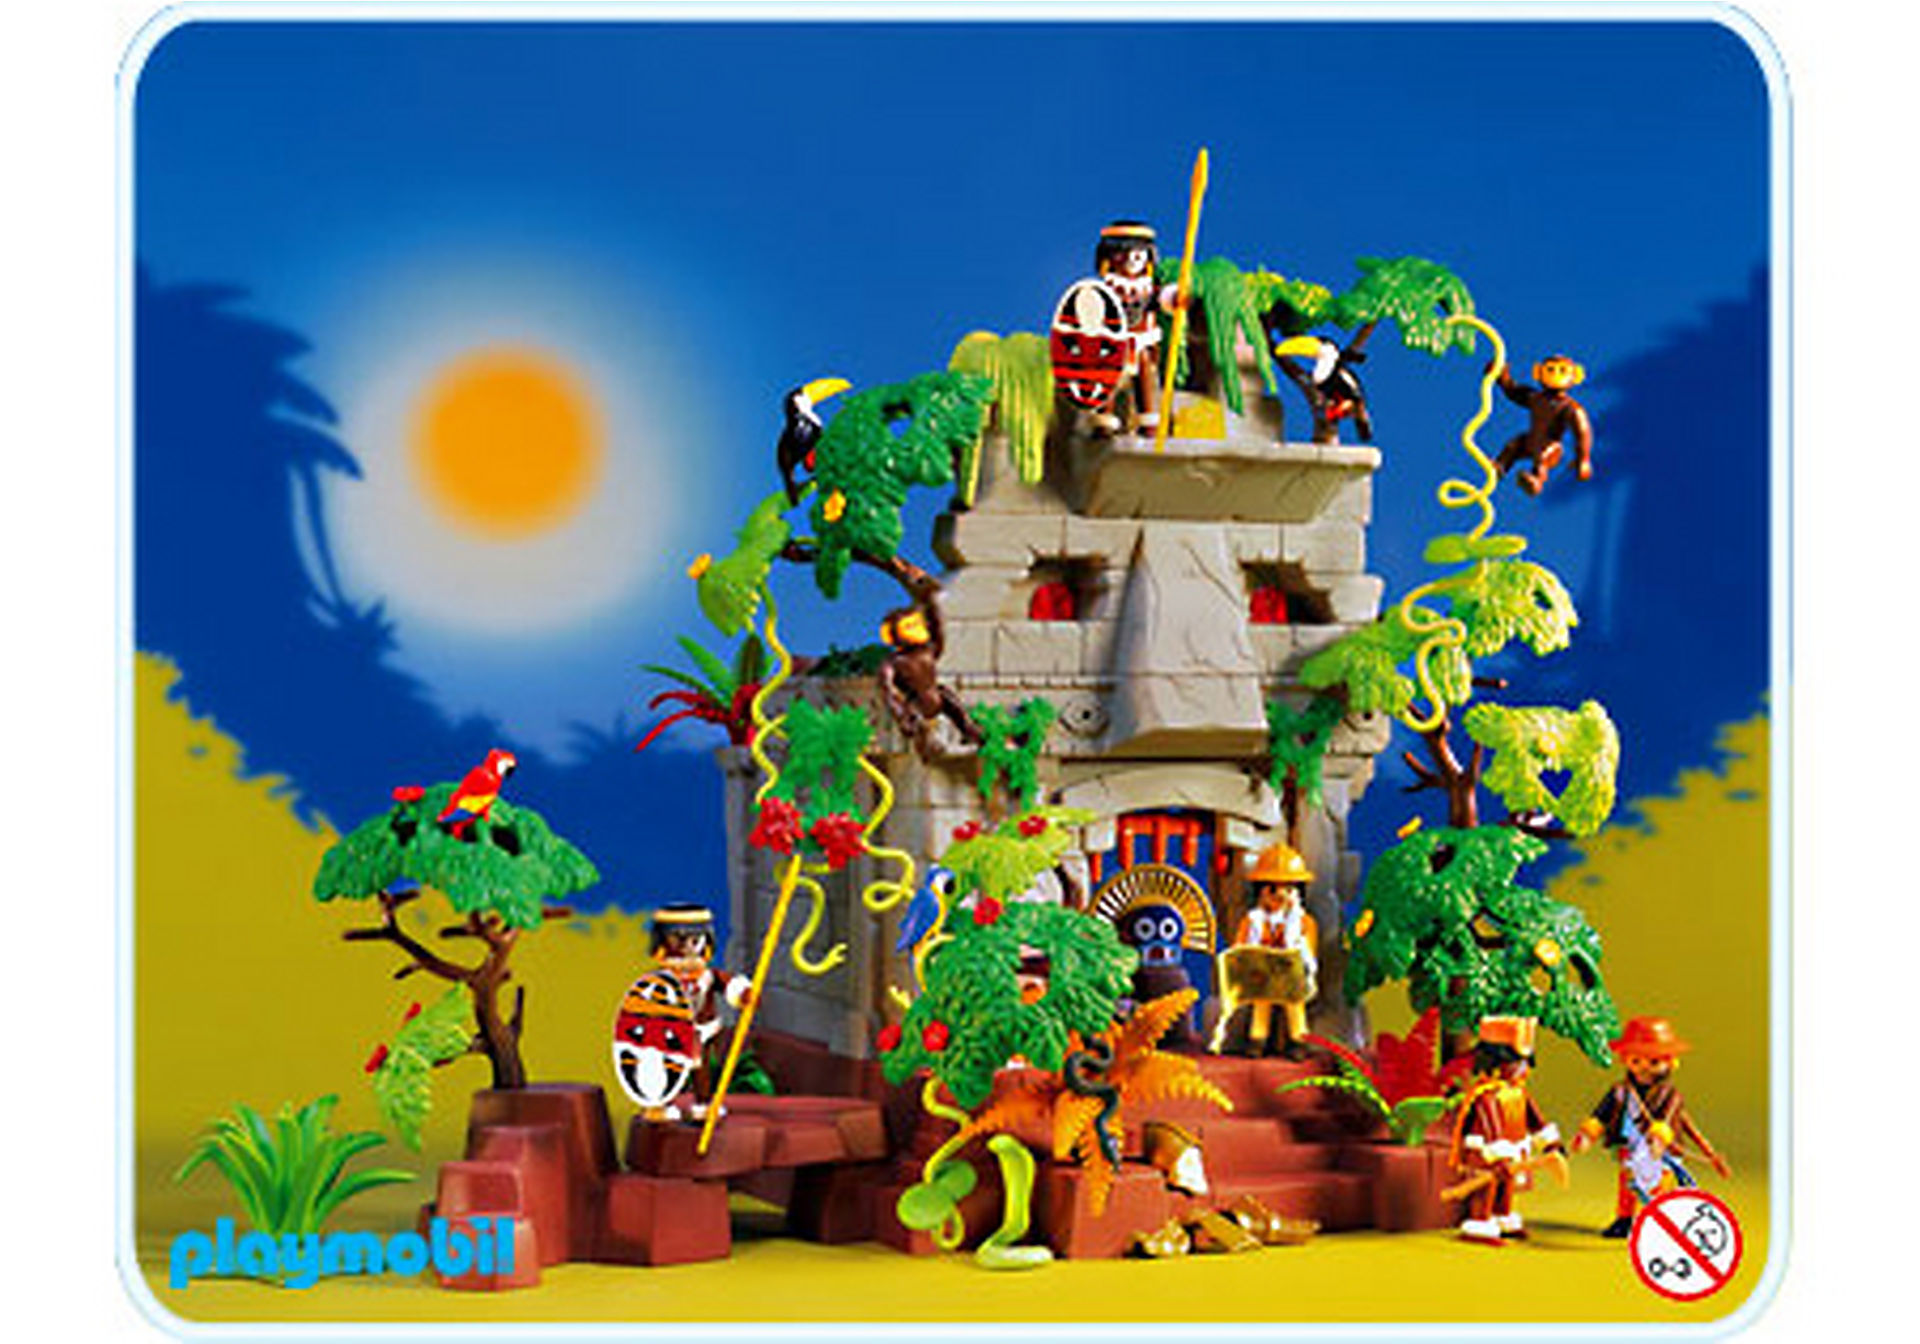 http://media.playmobil.com/i/playmobil/3015-A_product_detail/Dschungelruine